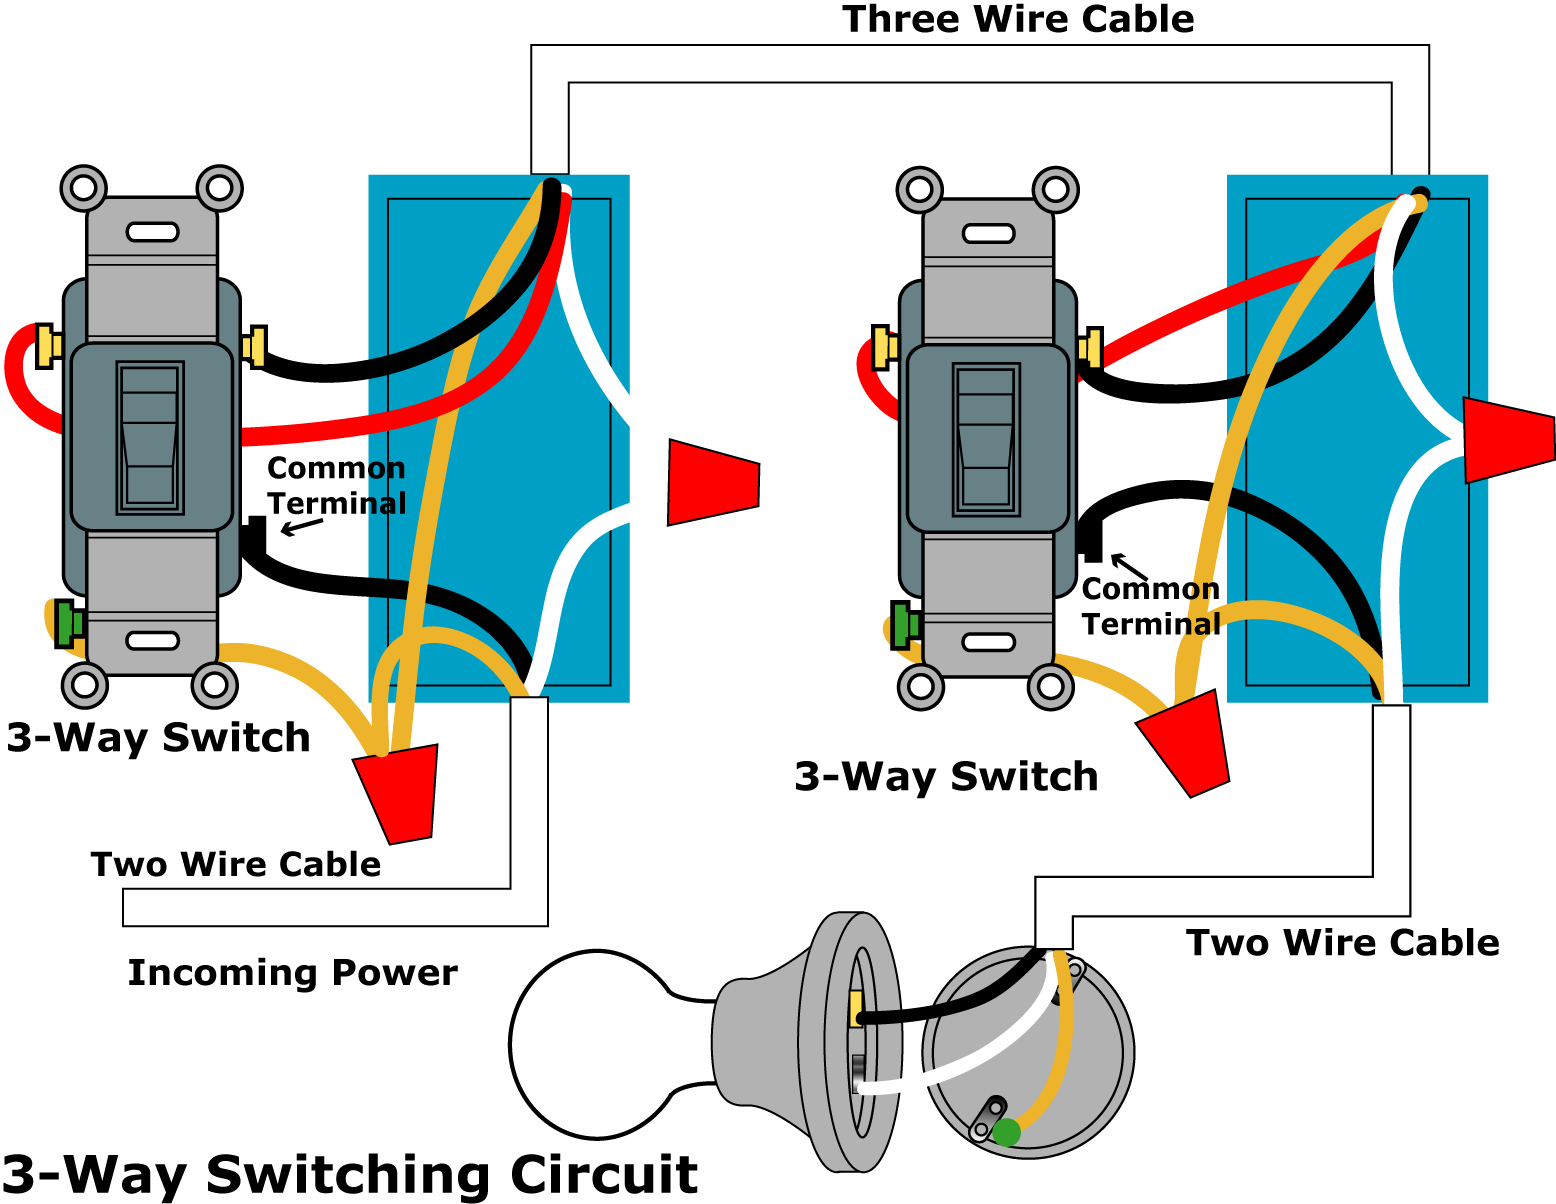 3 Way Switch Wiring Diagram 2 Switches Visio 2013 Uml Component Pole Transformer